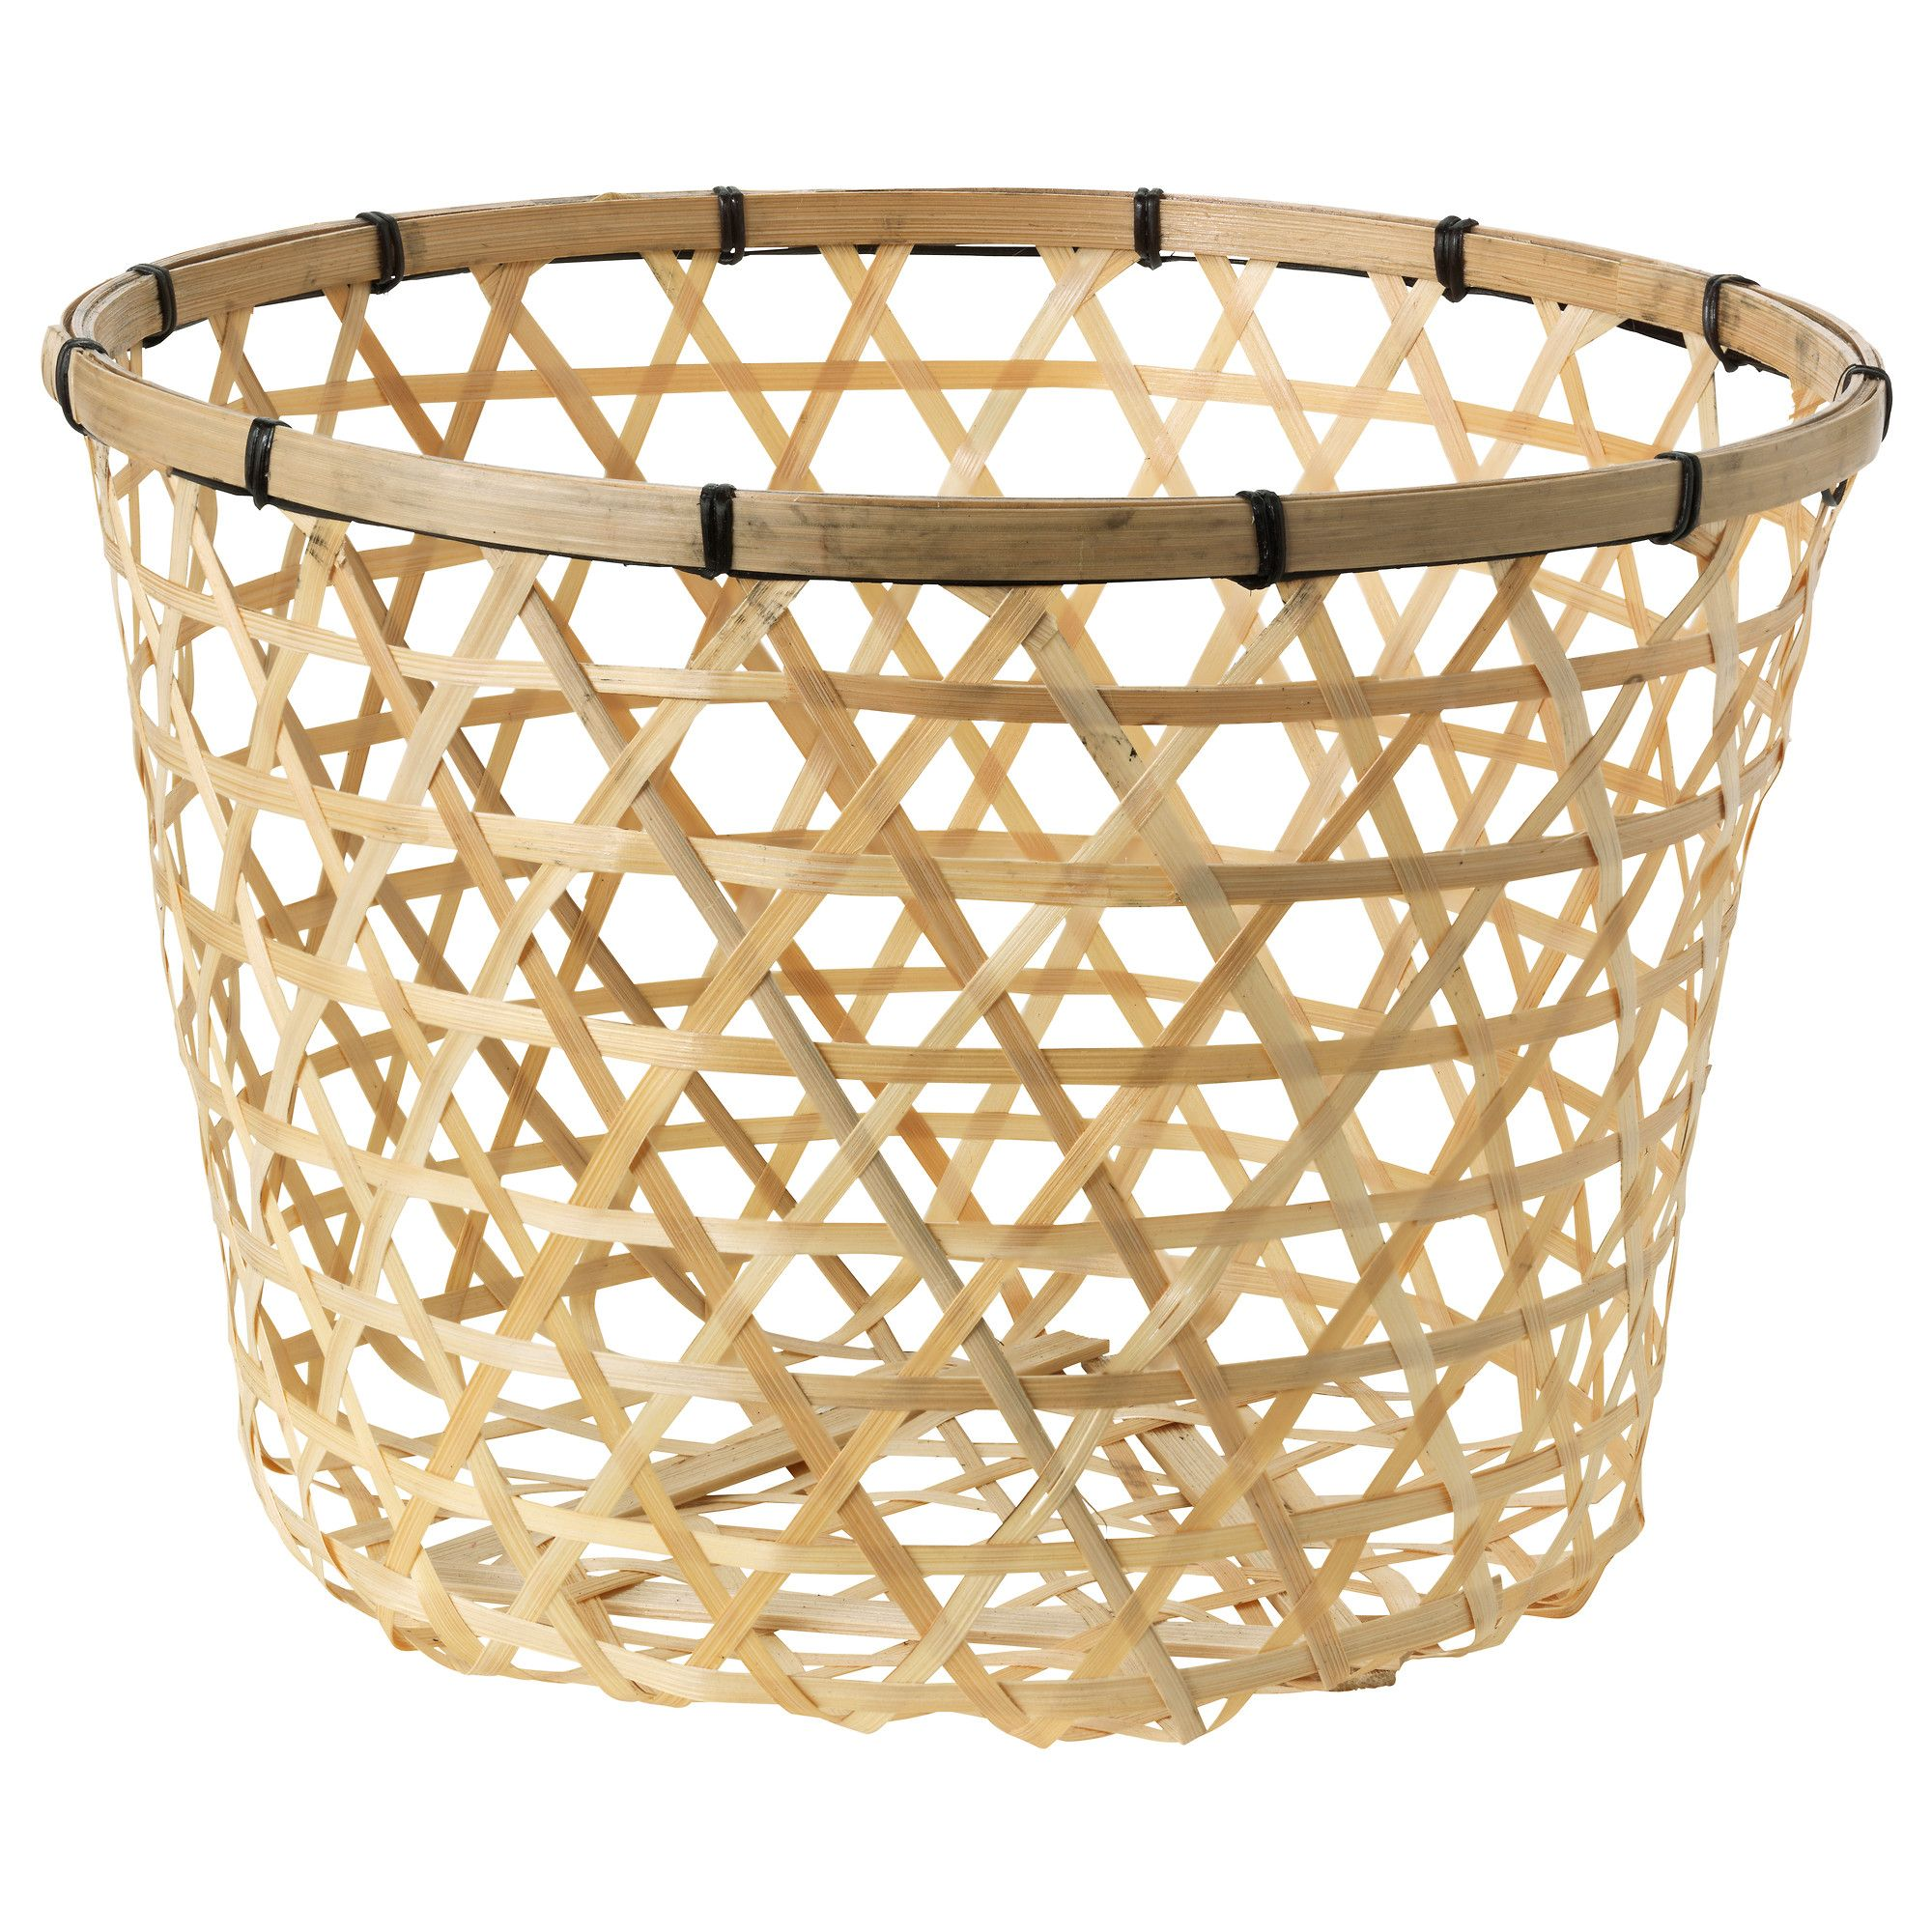 Paniers De Rangement Ikea HÖjdare Corbeille Naturel 32 Cm Ikea Items